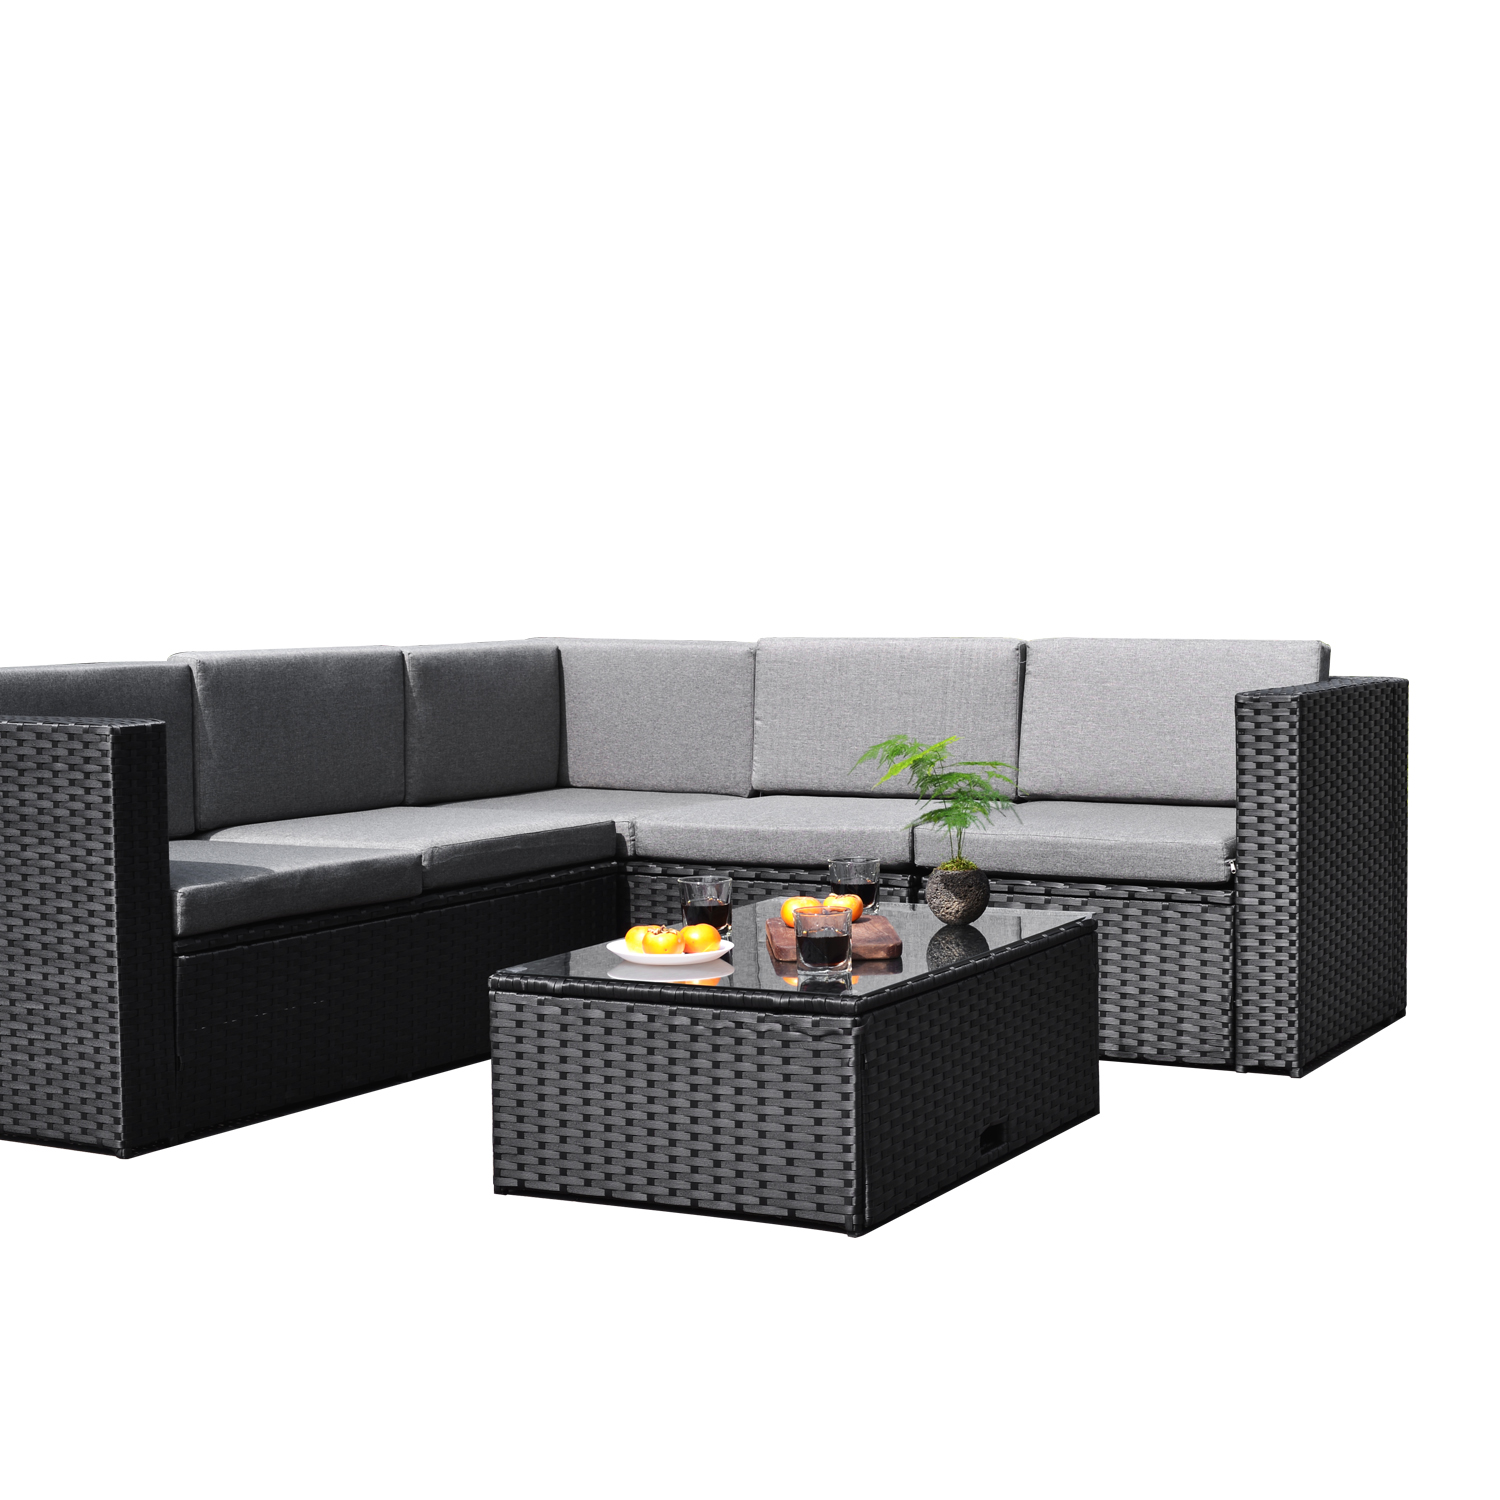 Sky Patio 4 Pieces Outdoor Furniture Complete Patio Wicker Rattan Garden  Corner Sofa Couch Set,